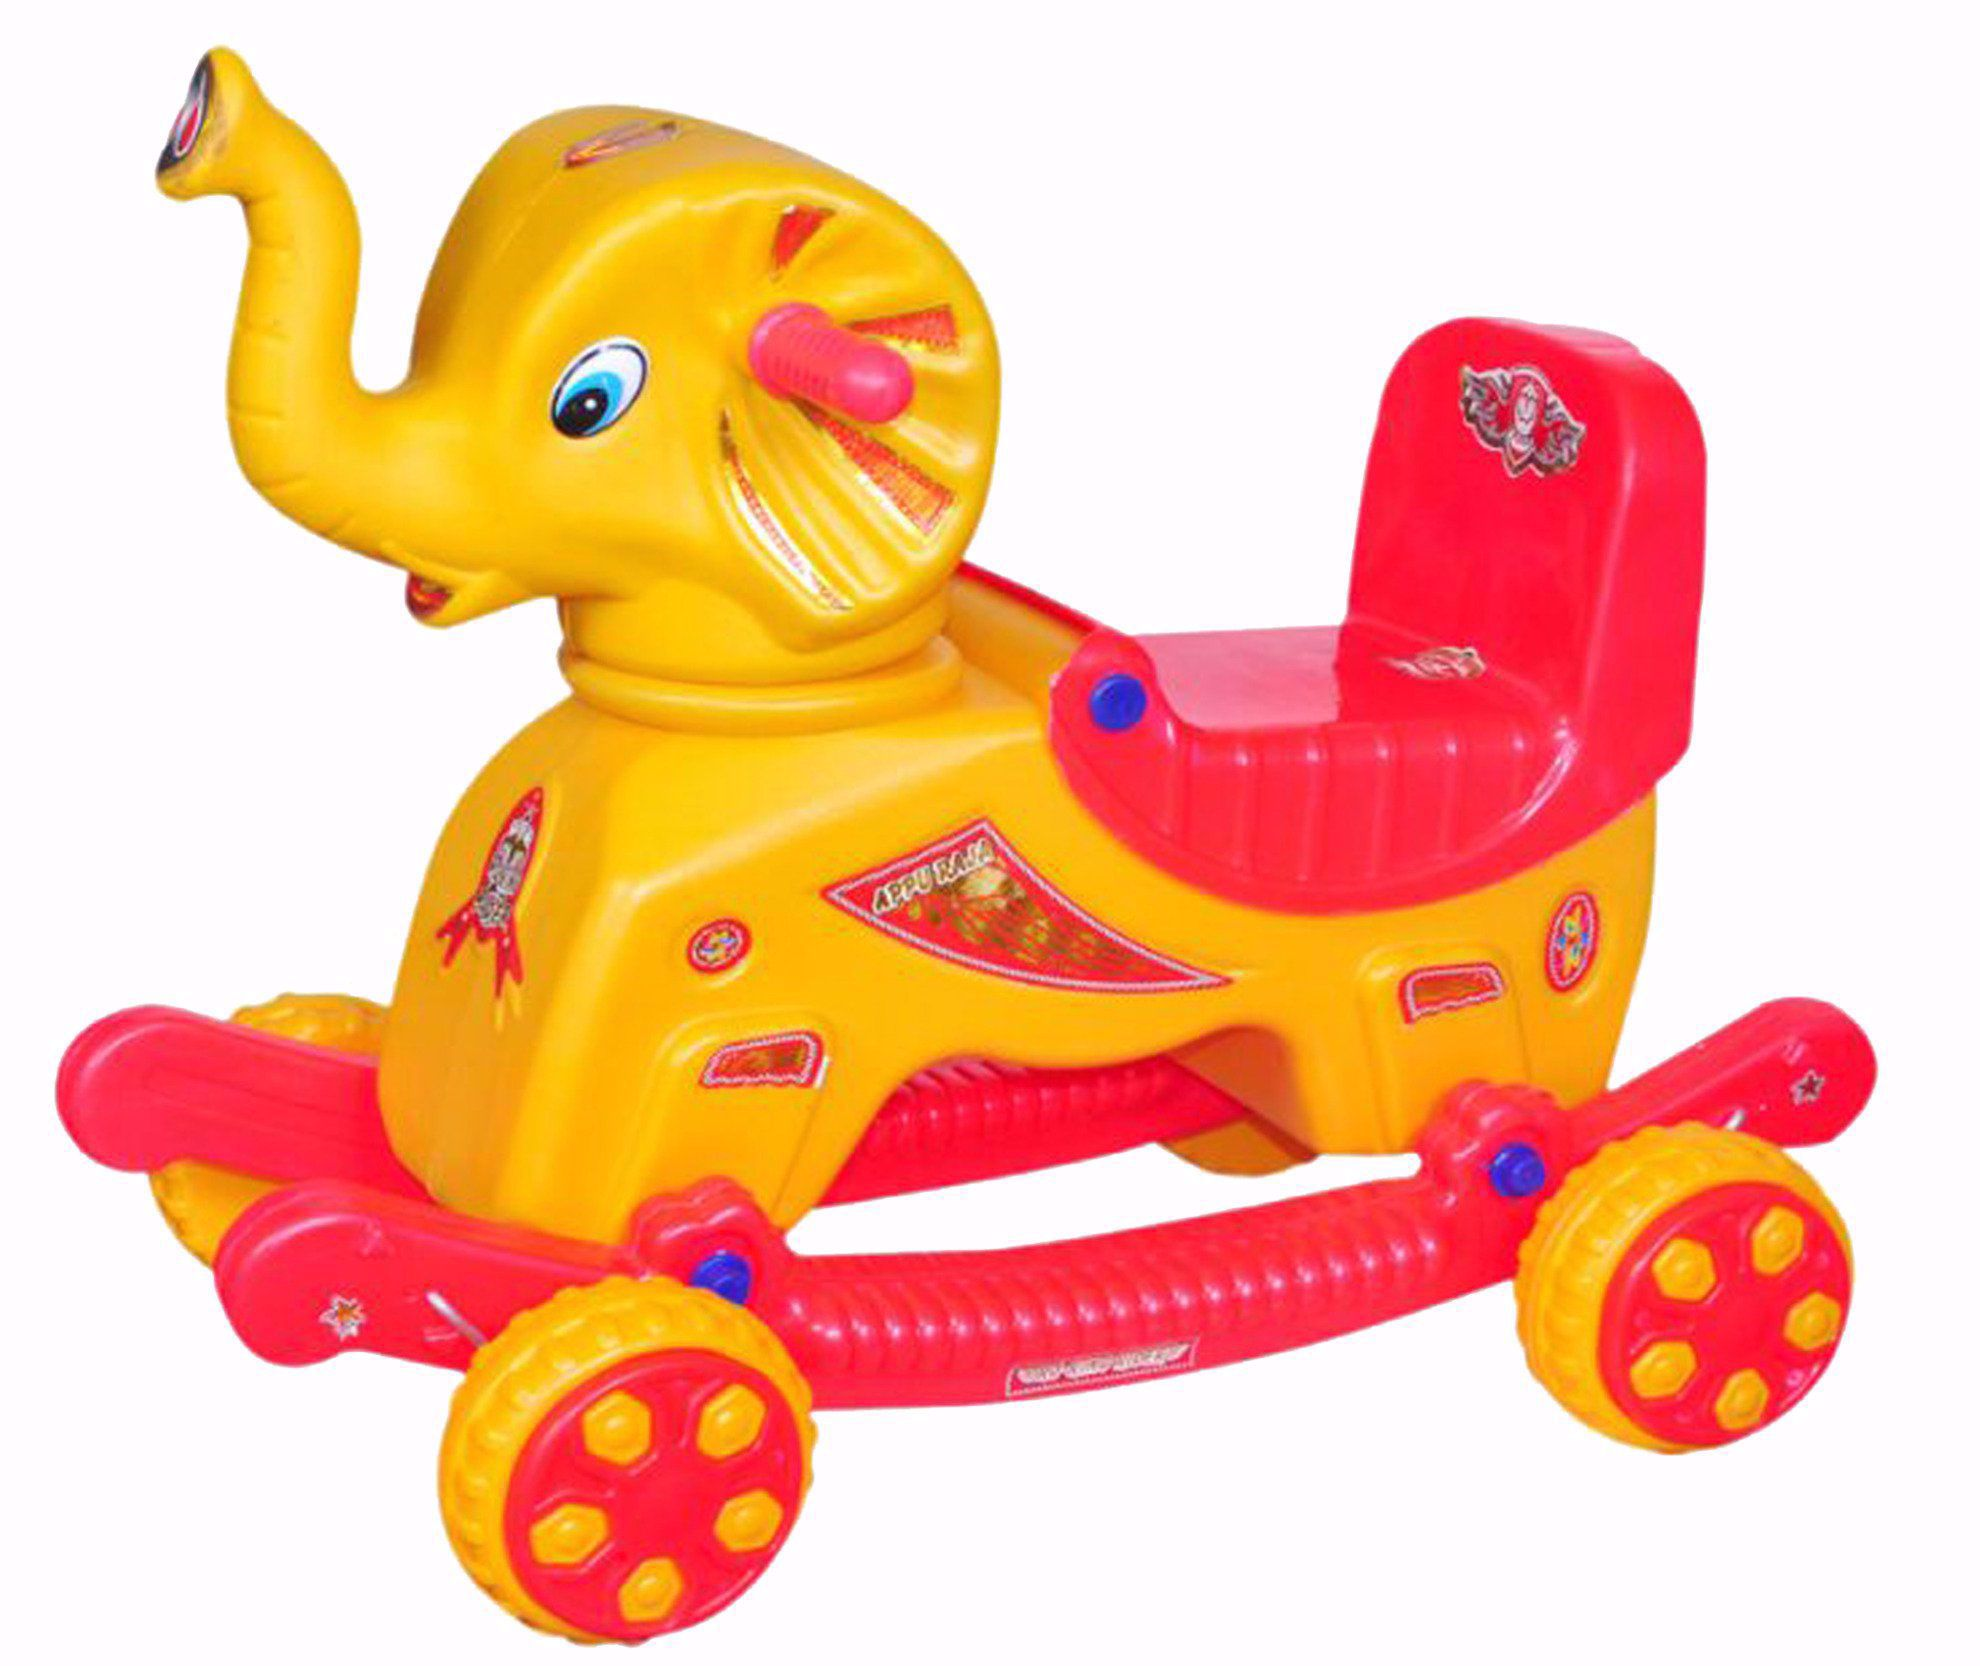 Baby Musical Elephant Rider Yellow & Red